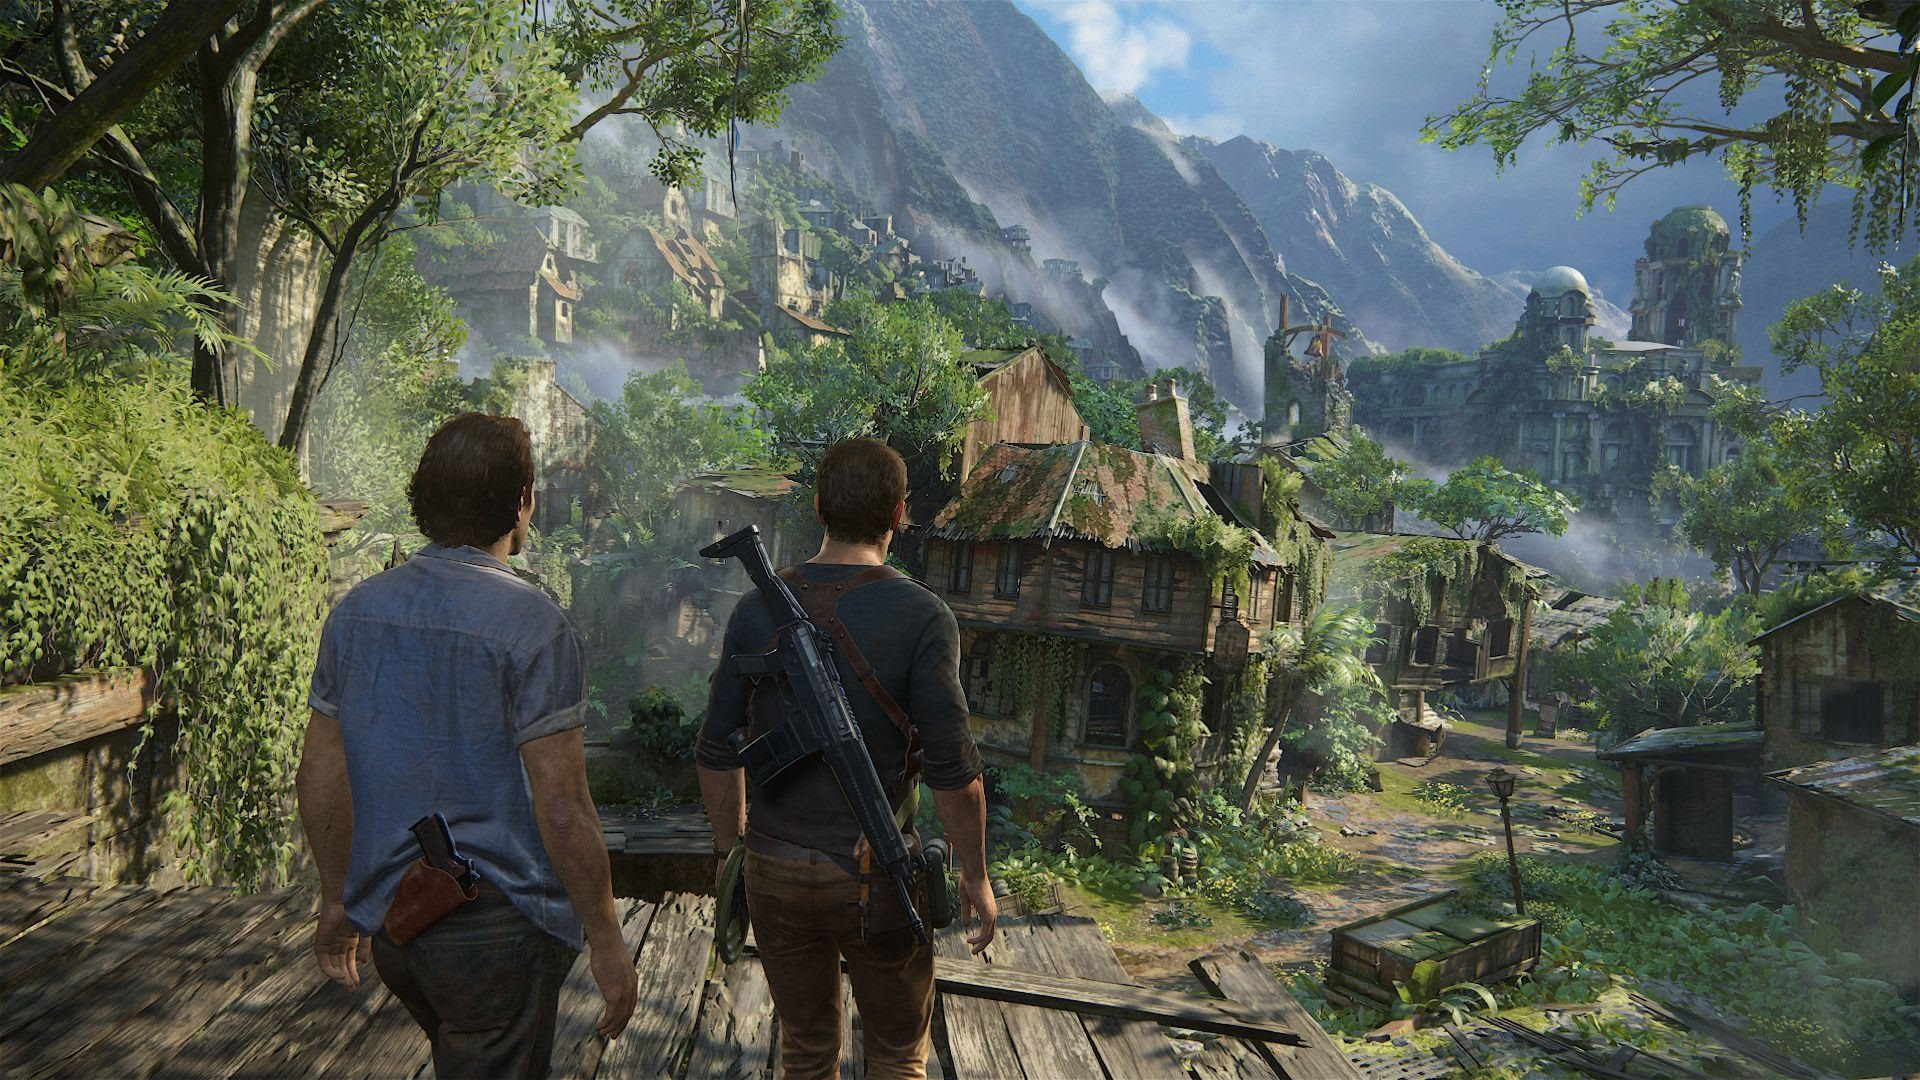 Naughty Dogs Latest Opus Uncharted 4 A Thiefs End Came Out Two Weeks Ago And It Received Incredible Recognition From Gamers Critics Alike